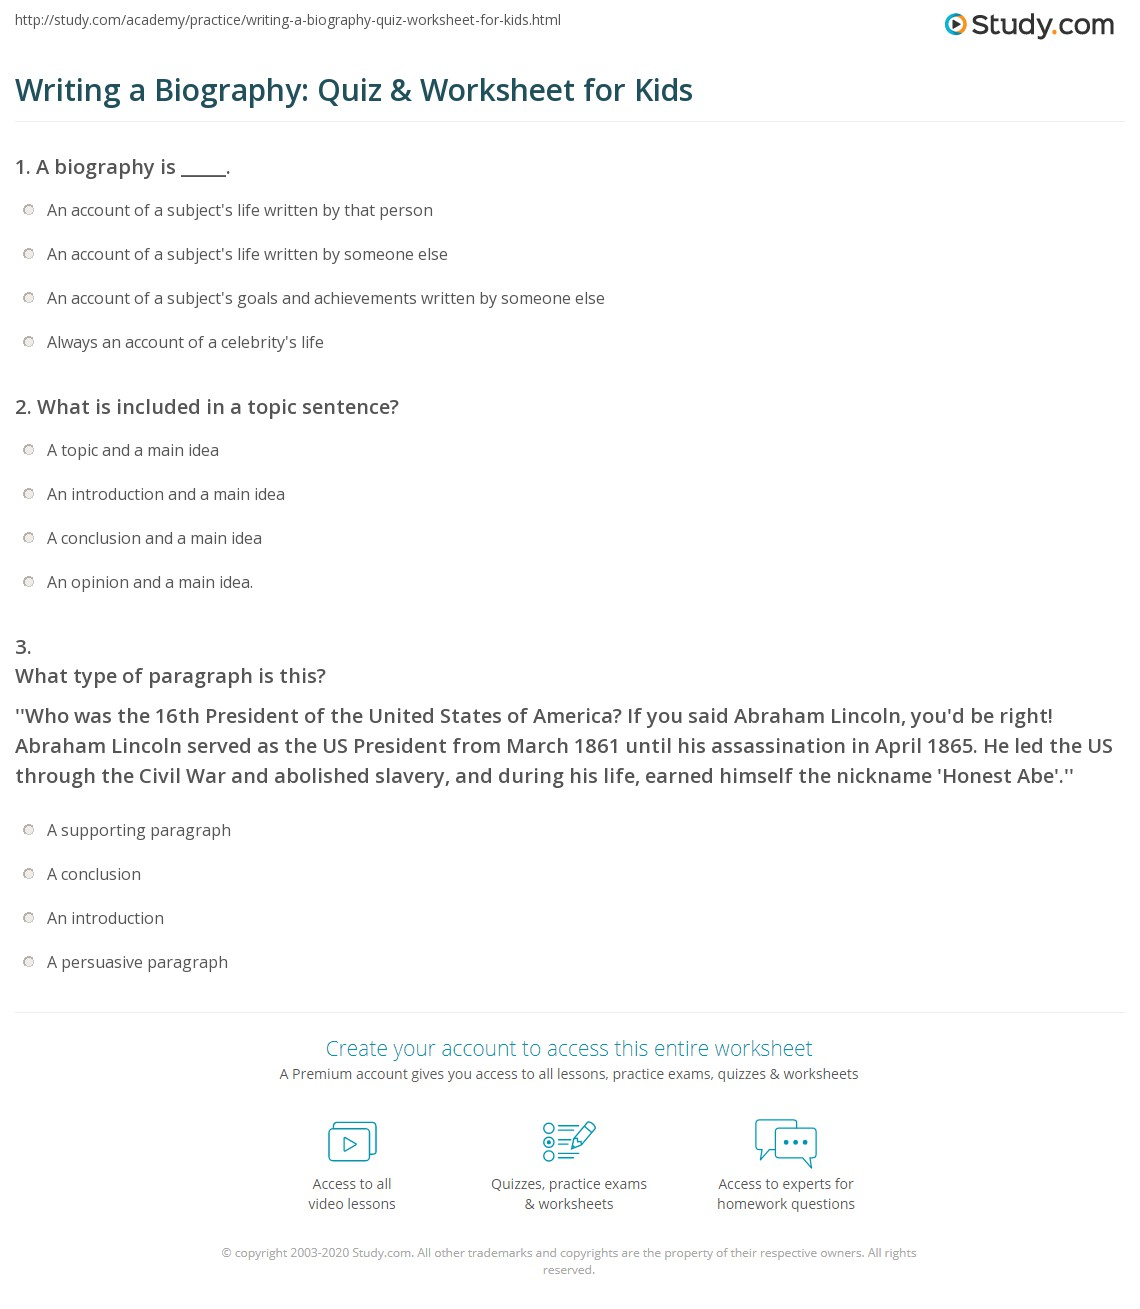 Writing A Biography Quiz Amp Worksheet For Kids